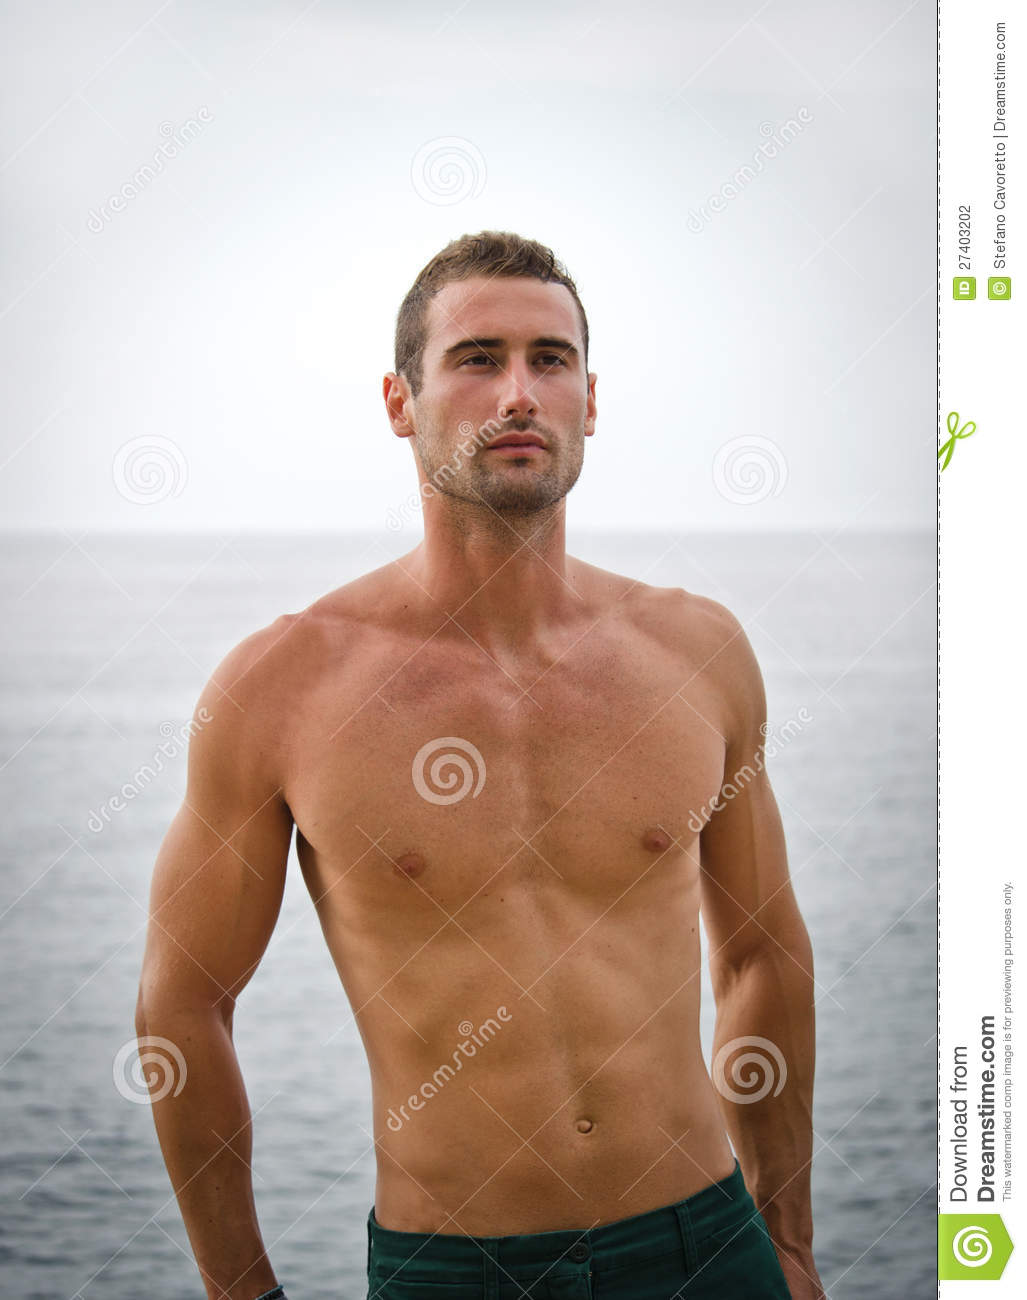 More similar stock images of ` Shirtless muscular male model with sea ...